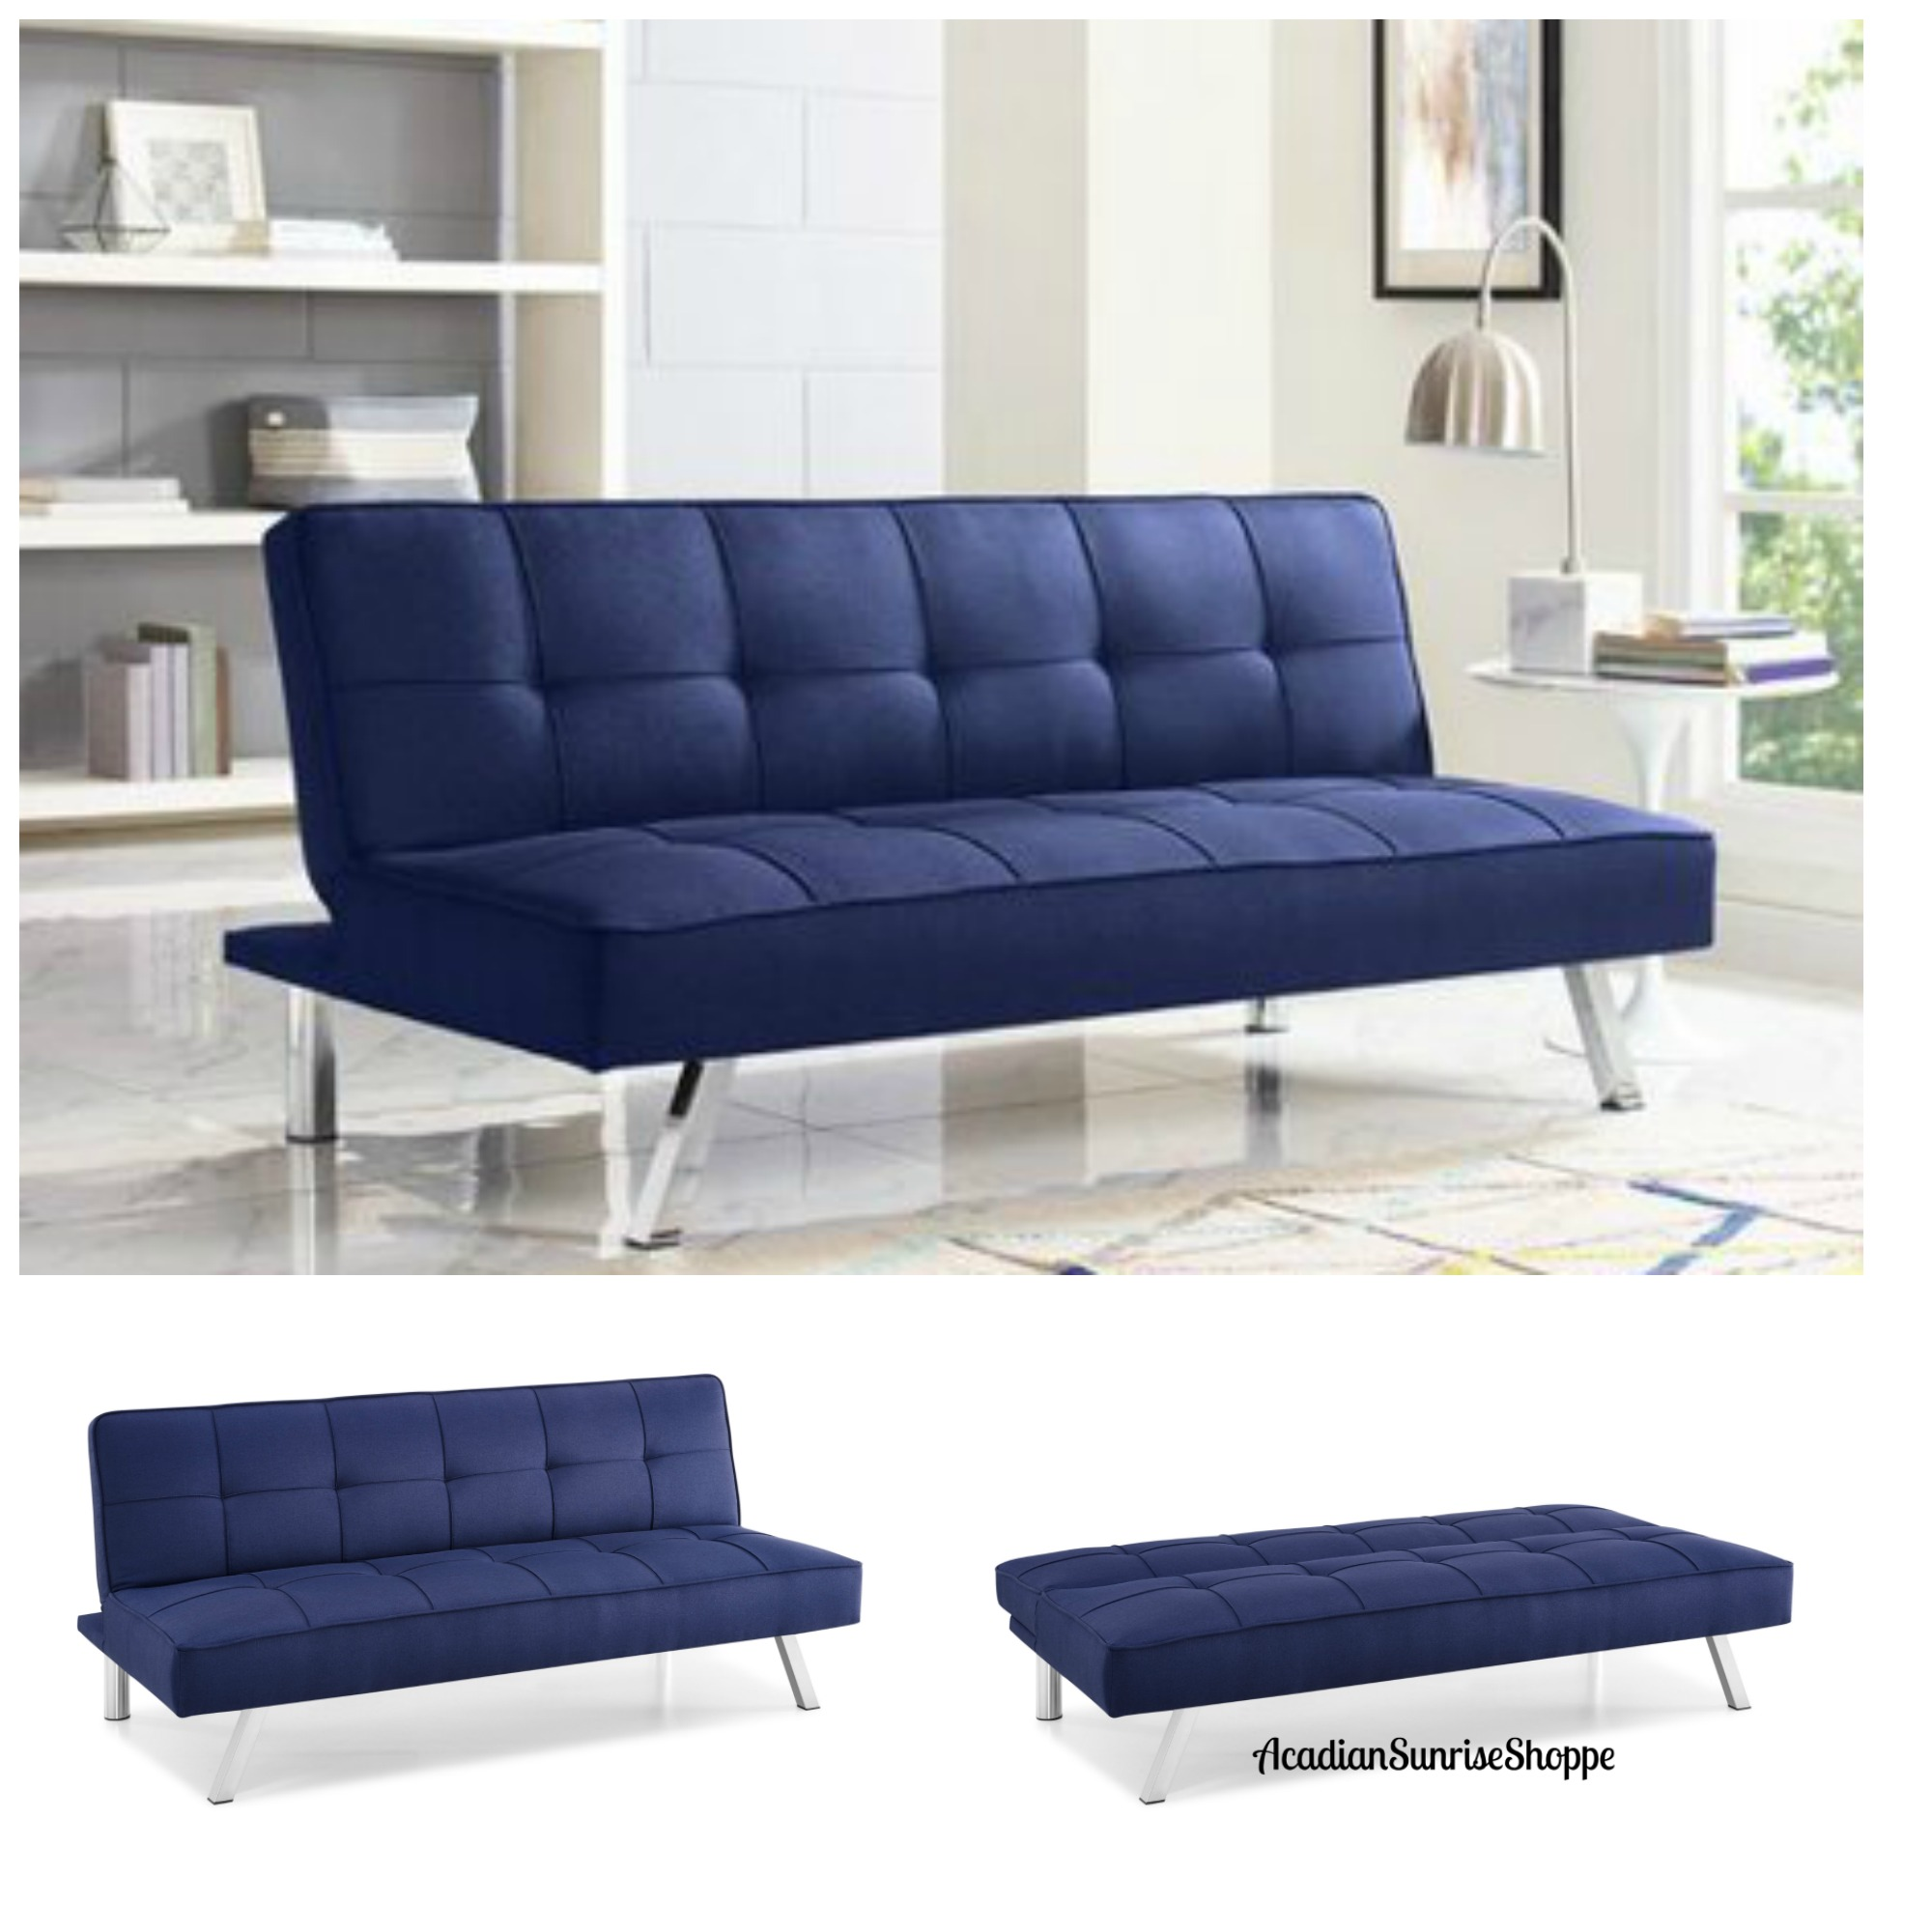 Details about Sleeper Sofa Bed Blue Convertible Couch Living Room Home  Office Futon Loveseat